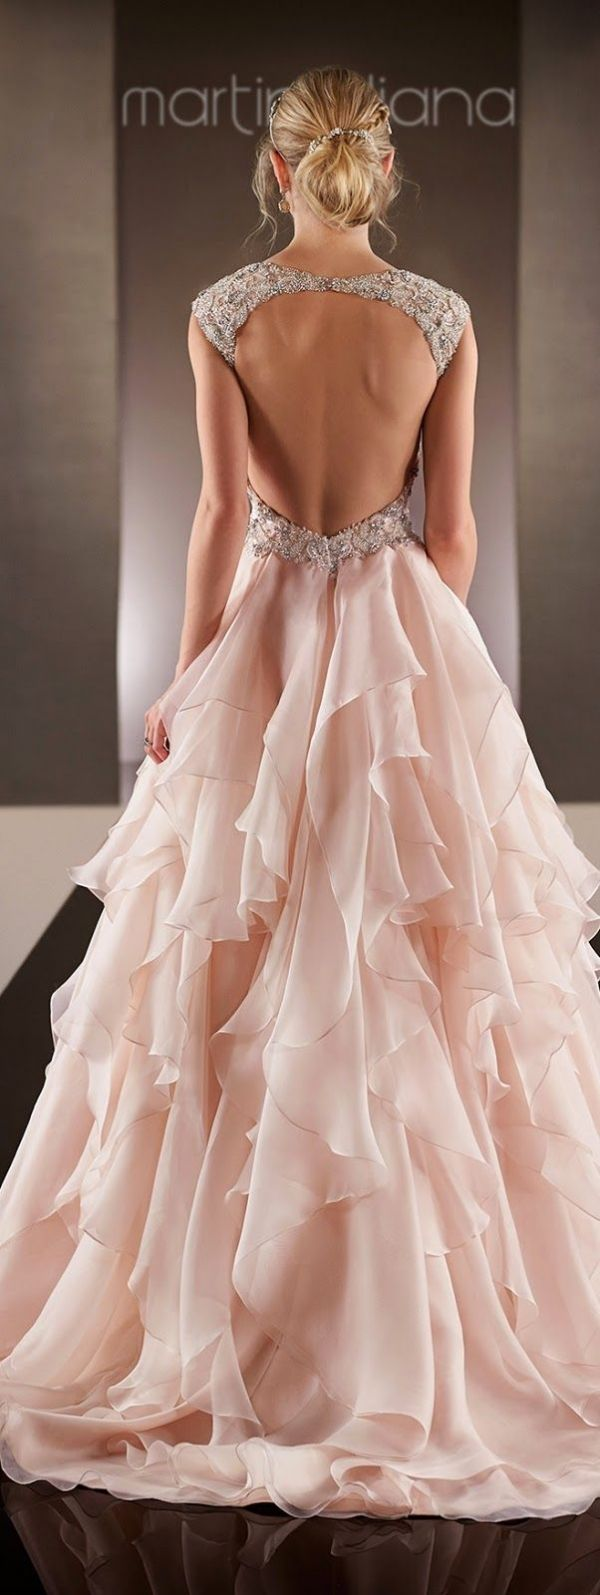 49 best Weddings images on Pinterest | Weddings, Bridle dress and ...